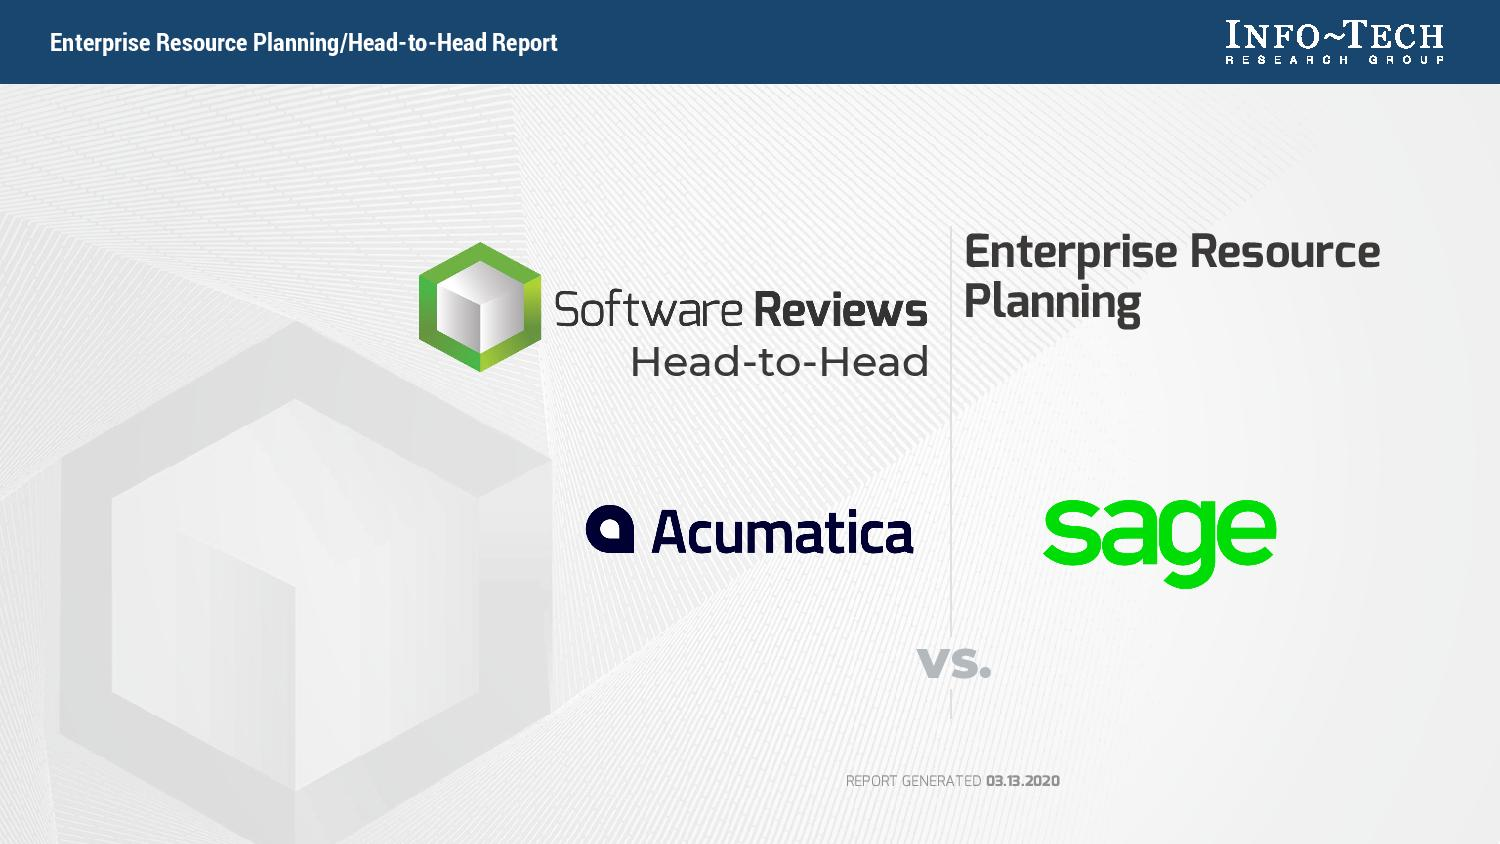 ERP Software Reviews: Acumatica vs. Sage, page 0